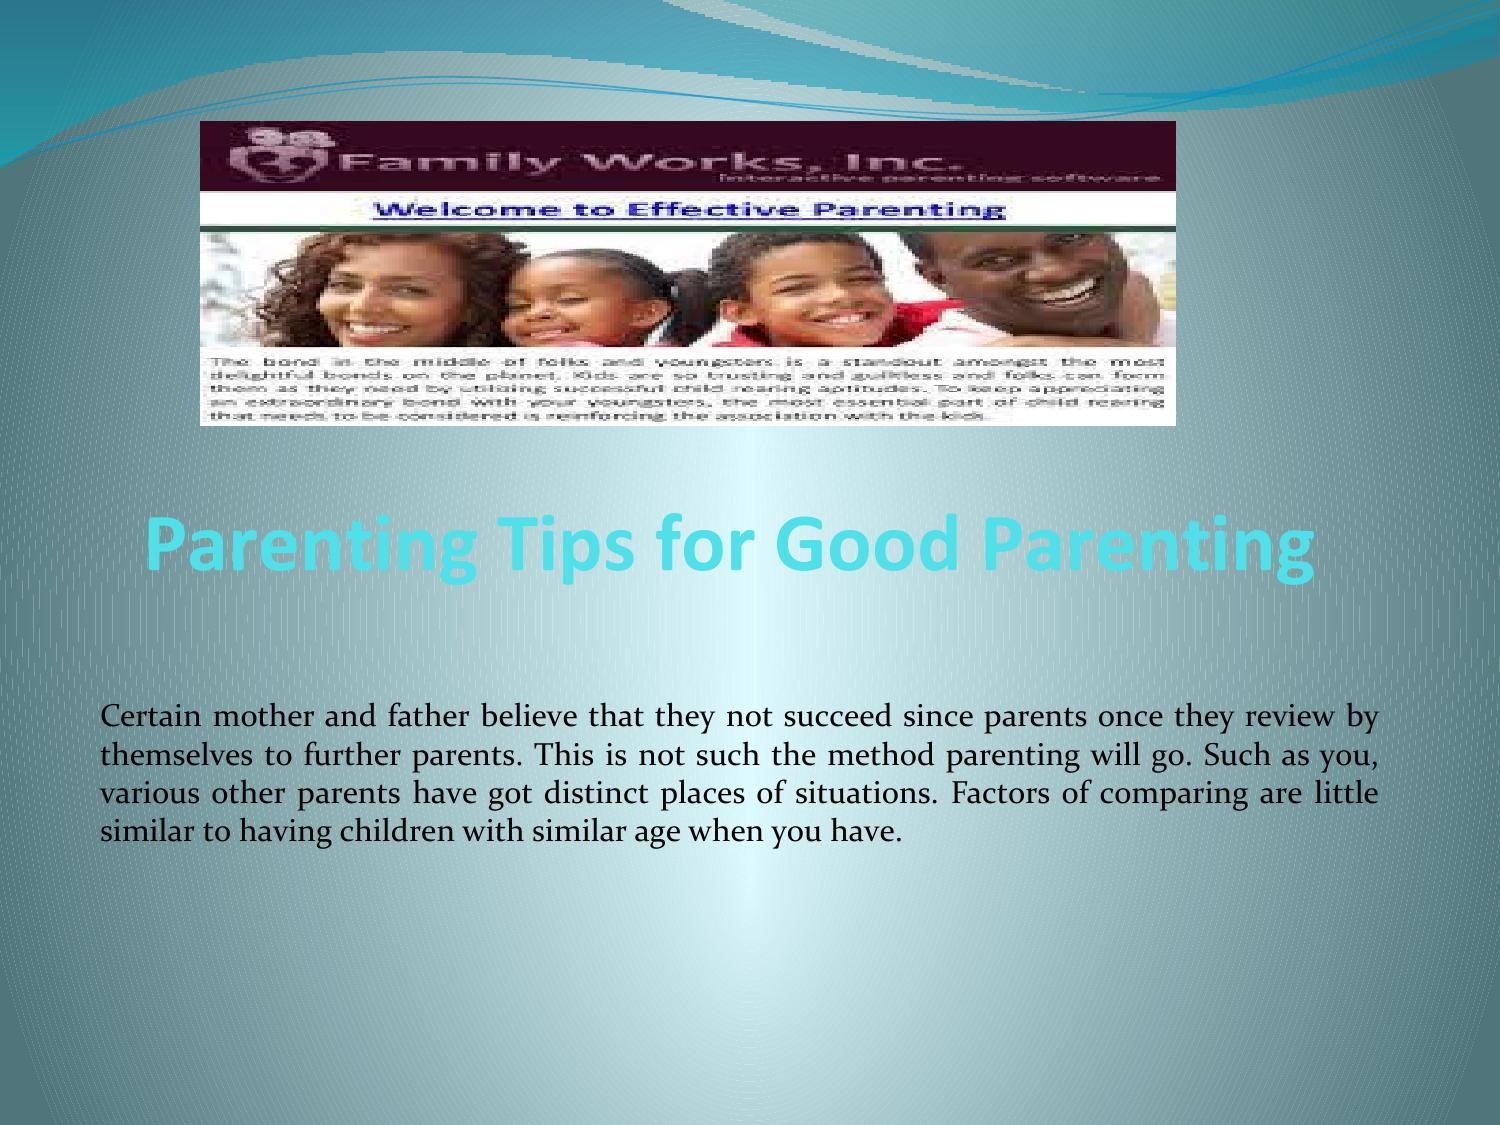 family virtues a guide to effective parenting